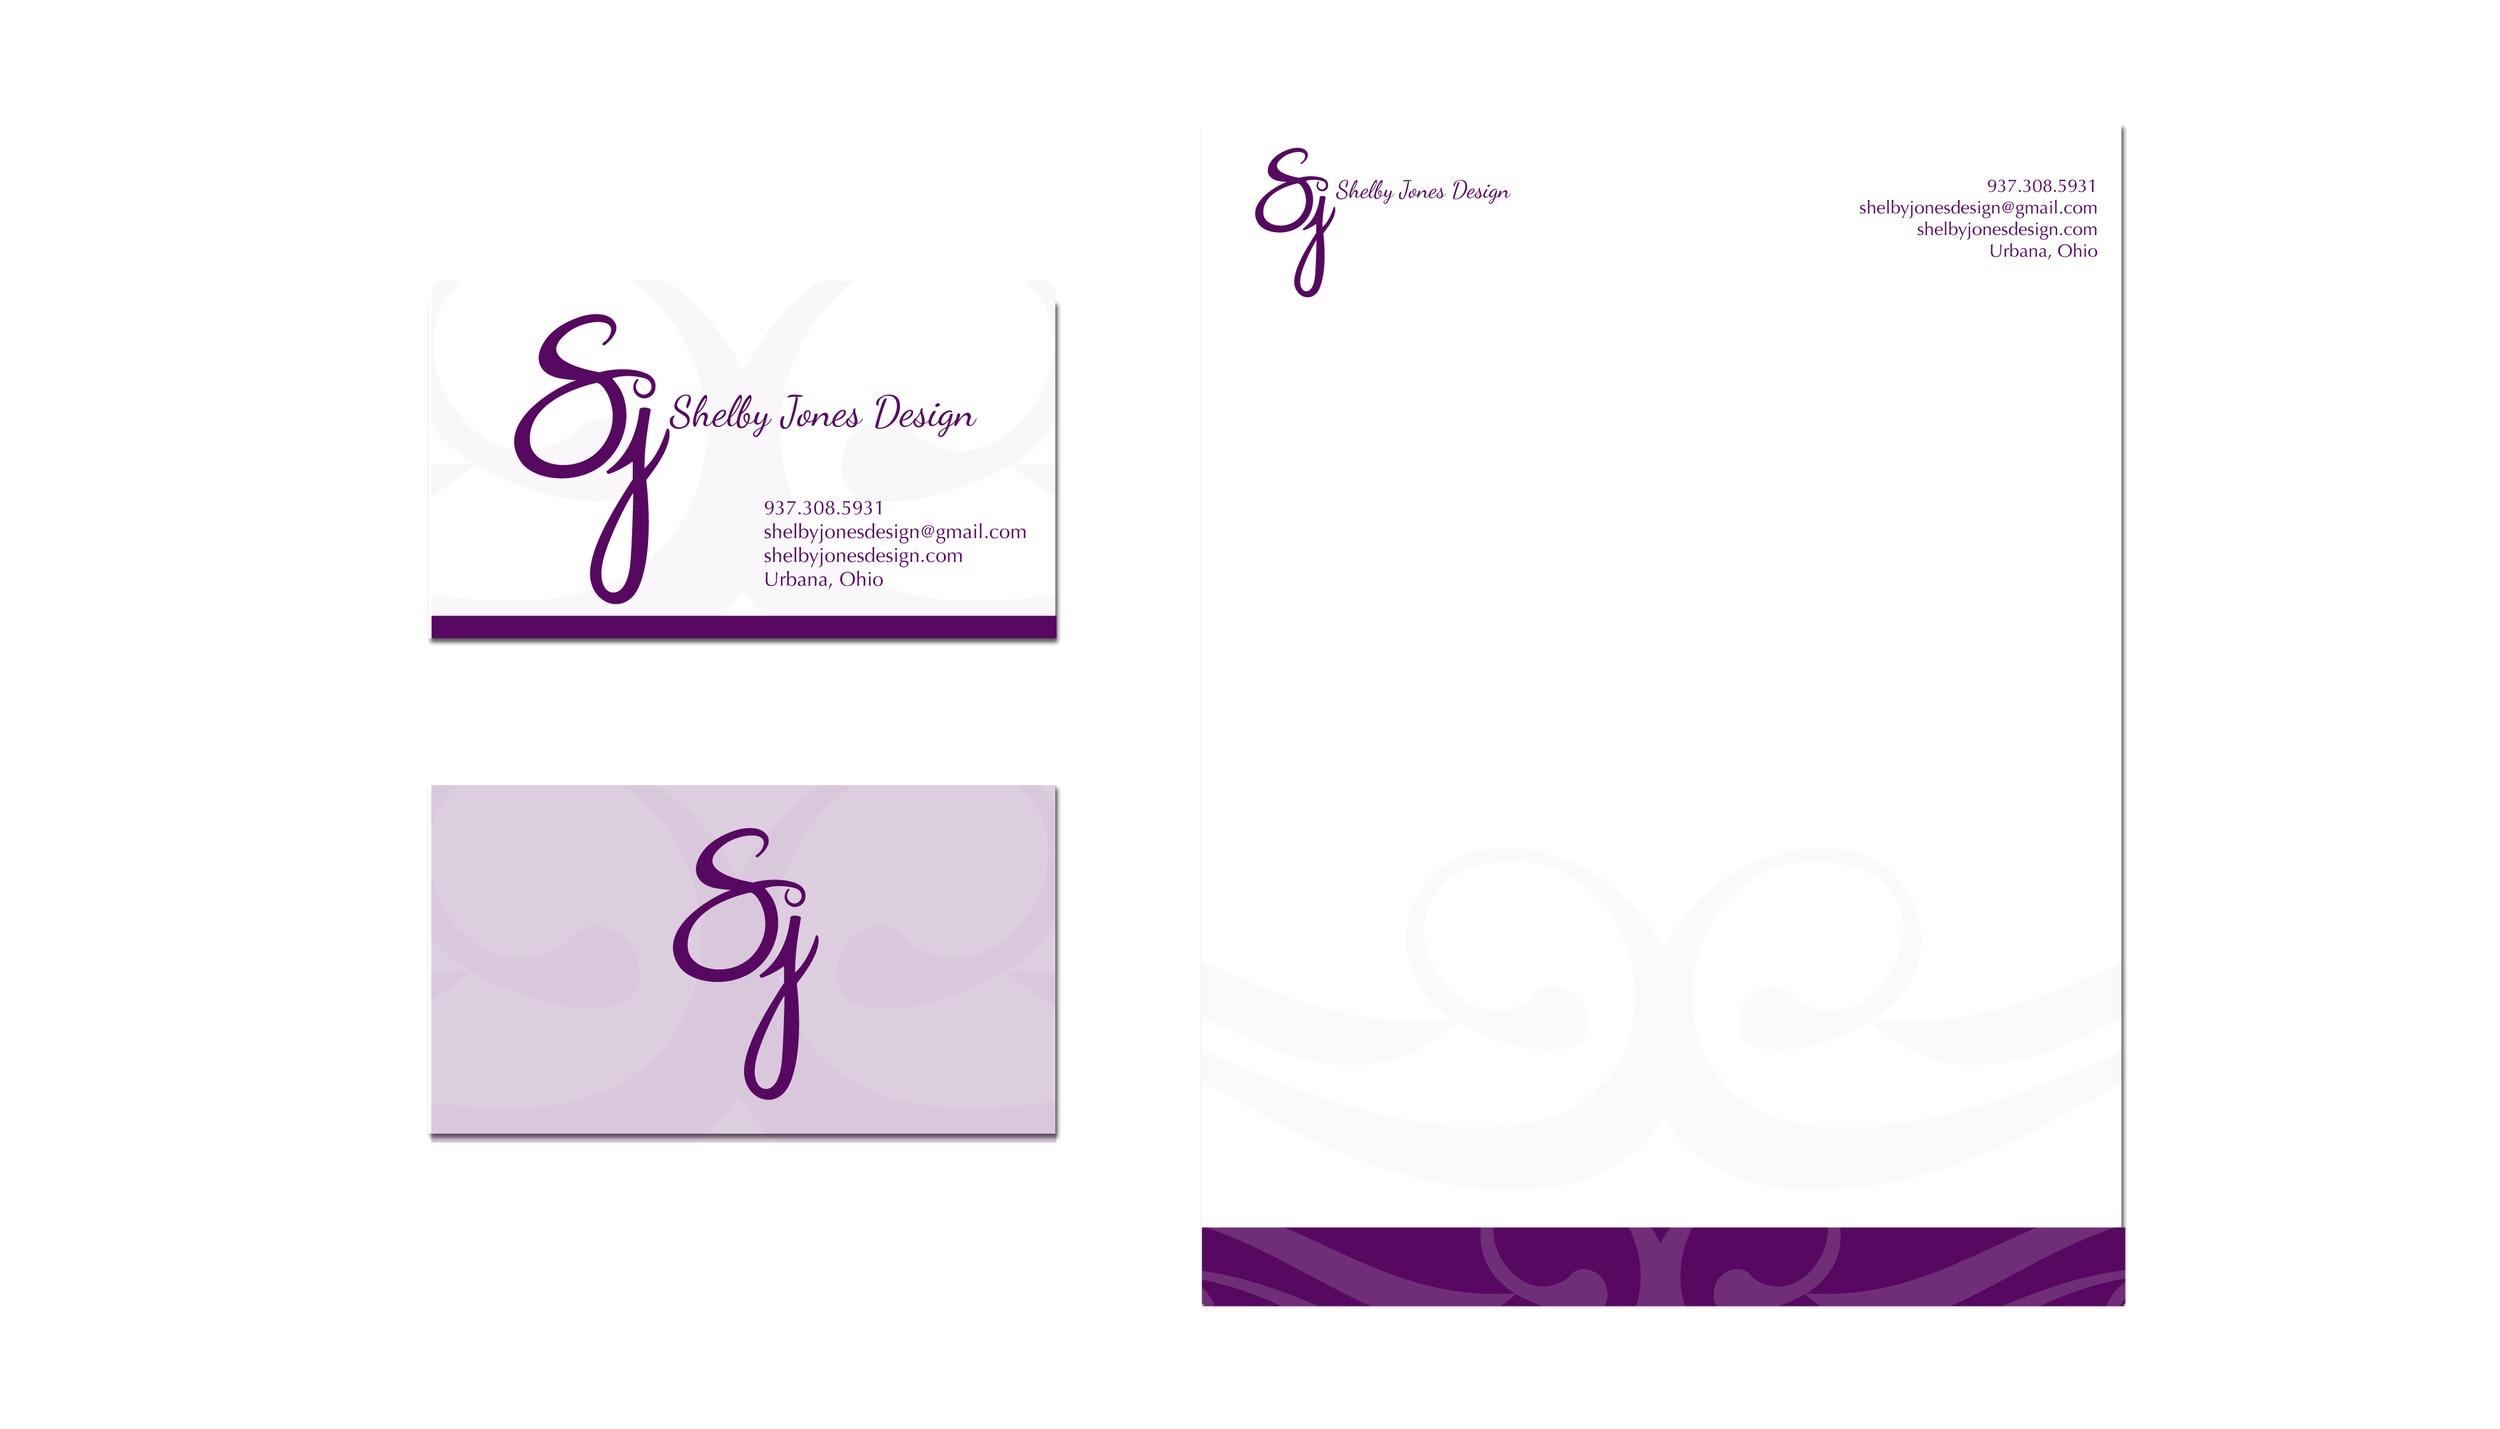 BusinessCard&Letterhead.jpg